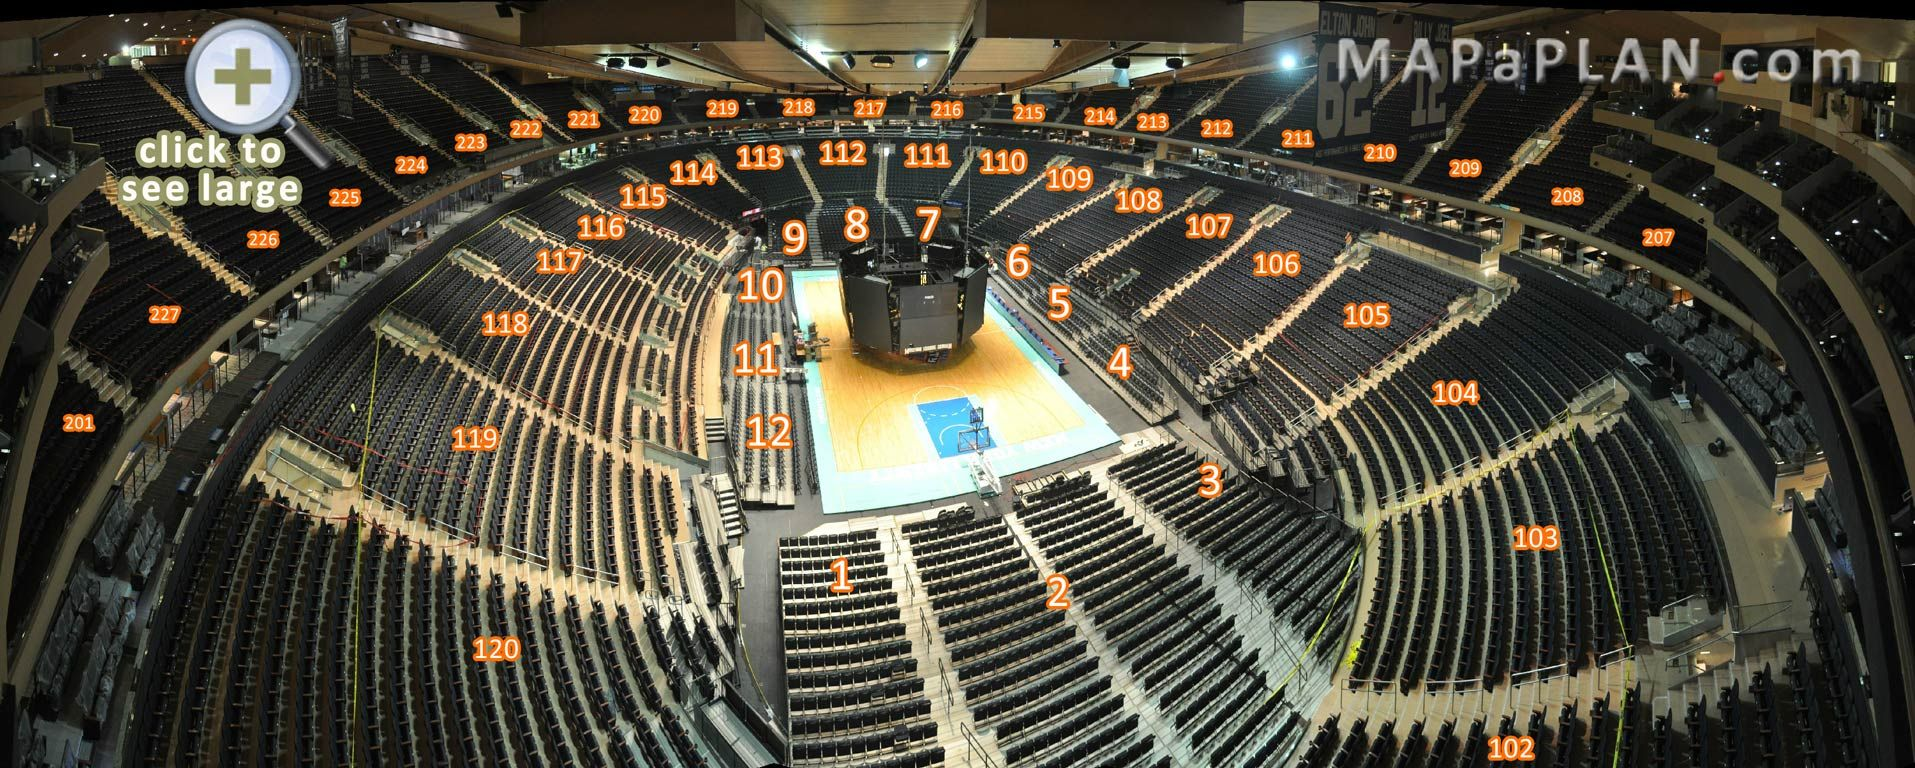 Madison square garden seating chart Interactive basketball 3d